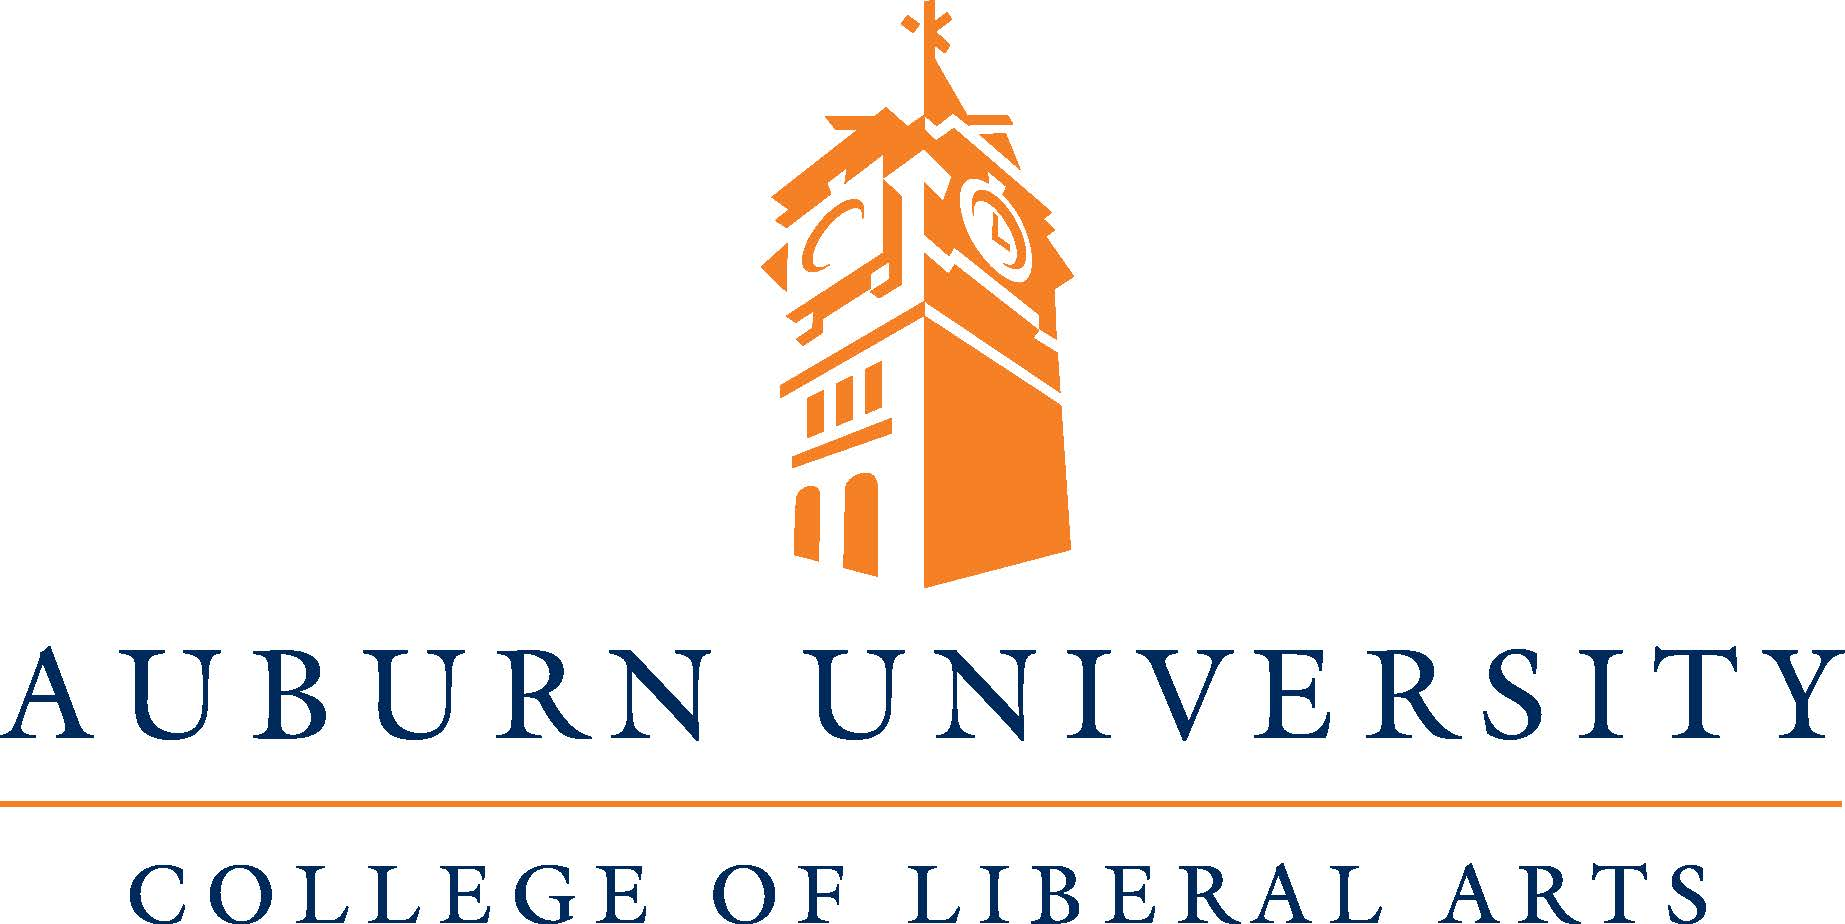 Logos and Templates - Perspectives - College of Liberal Arts ...